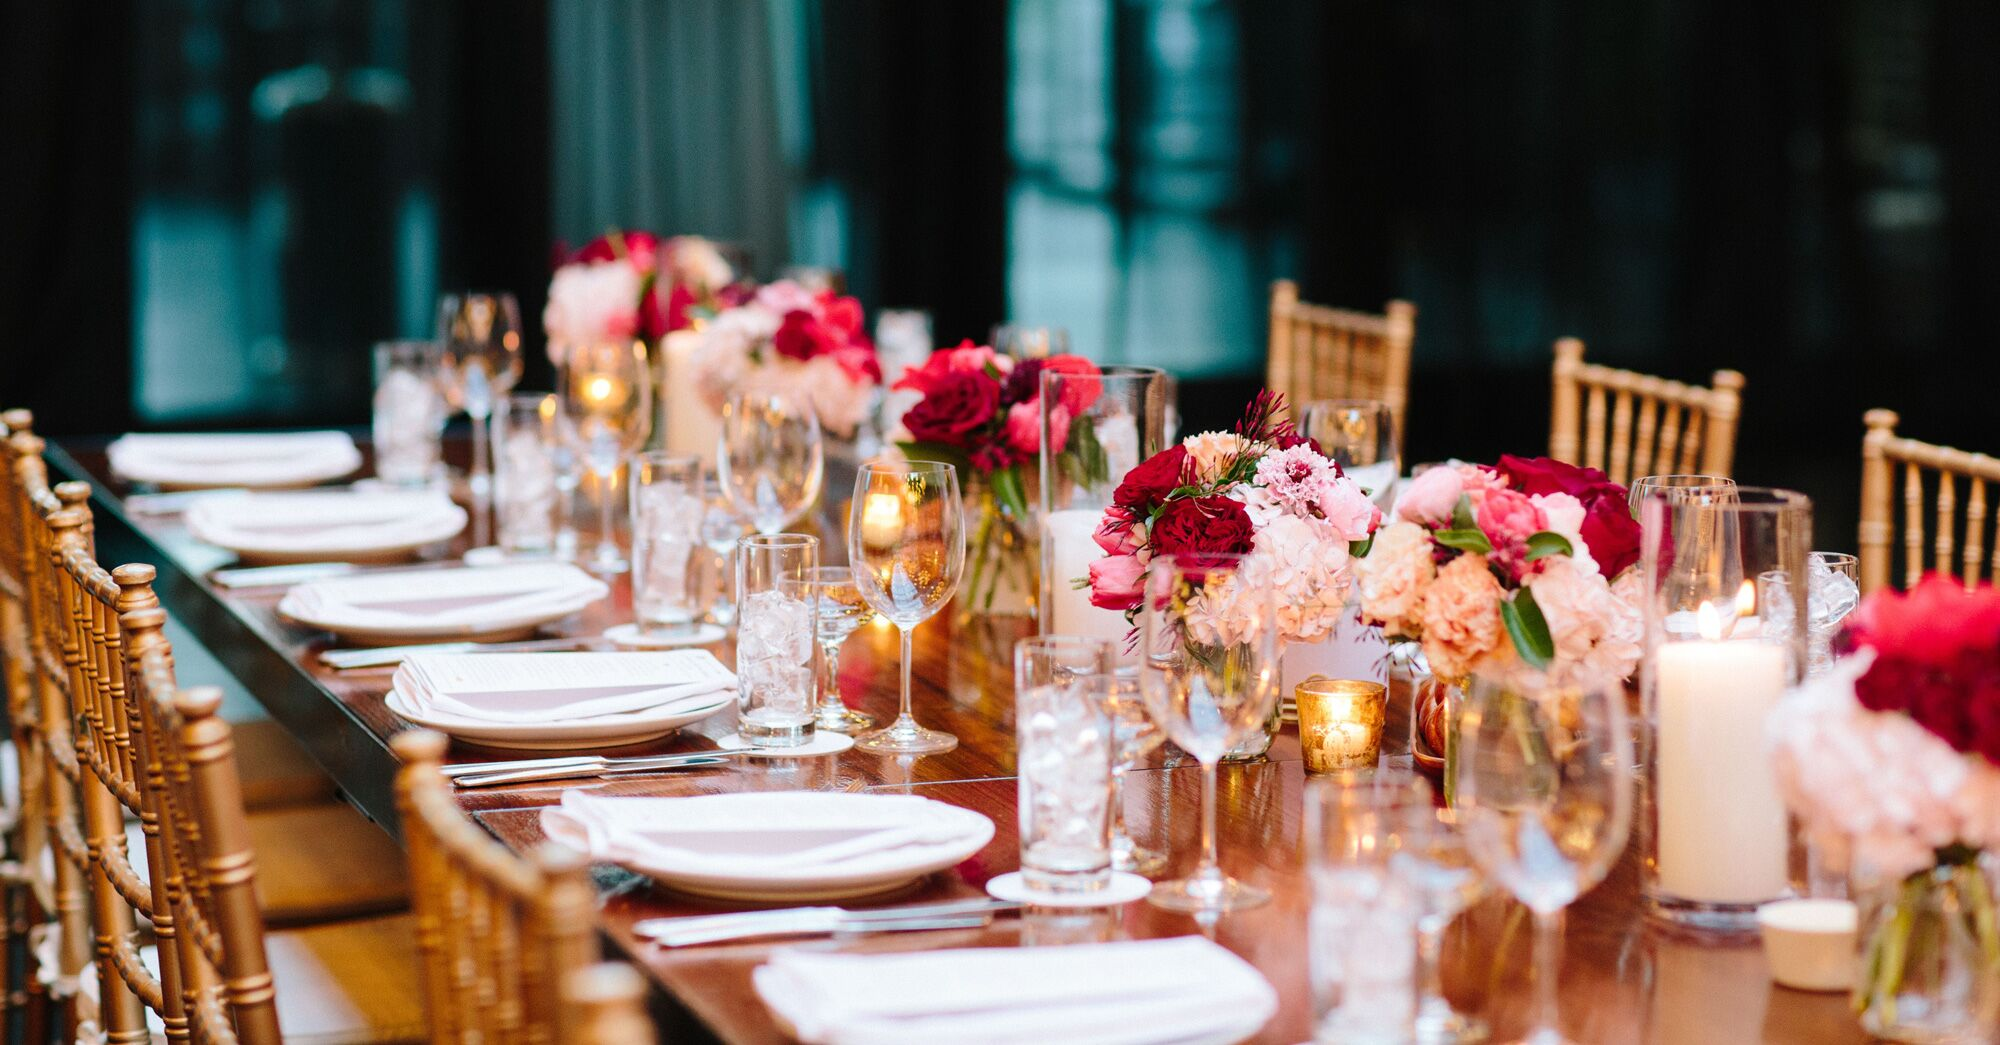 Planning An Engagement Party 101 Everything You Need To Know,Scandinavian Living Room Curtains